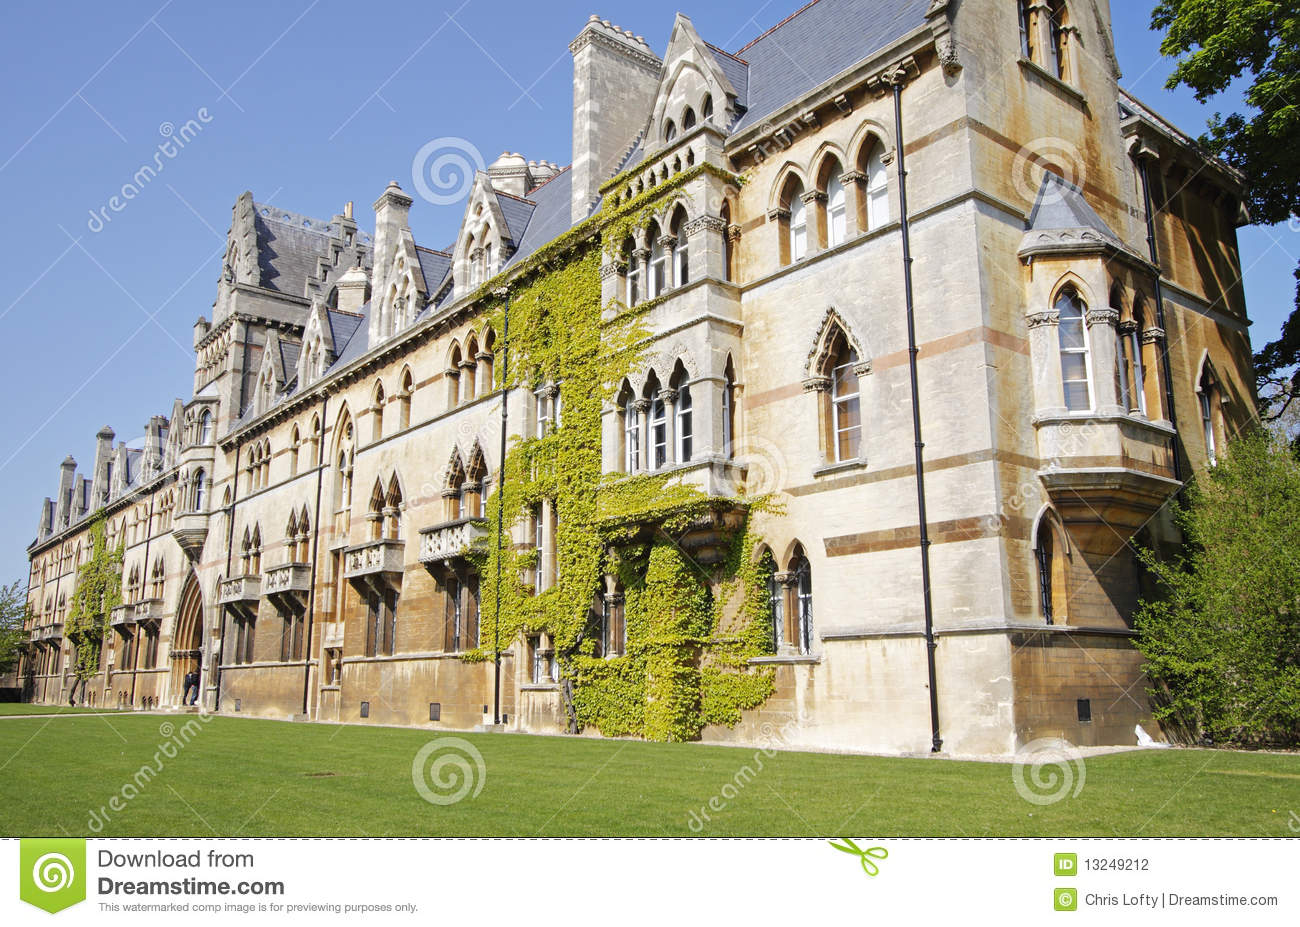 oxford university buildings in england stock photo image of study